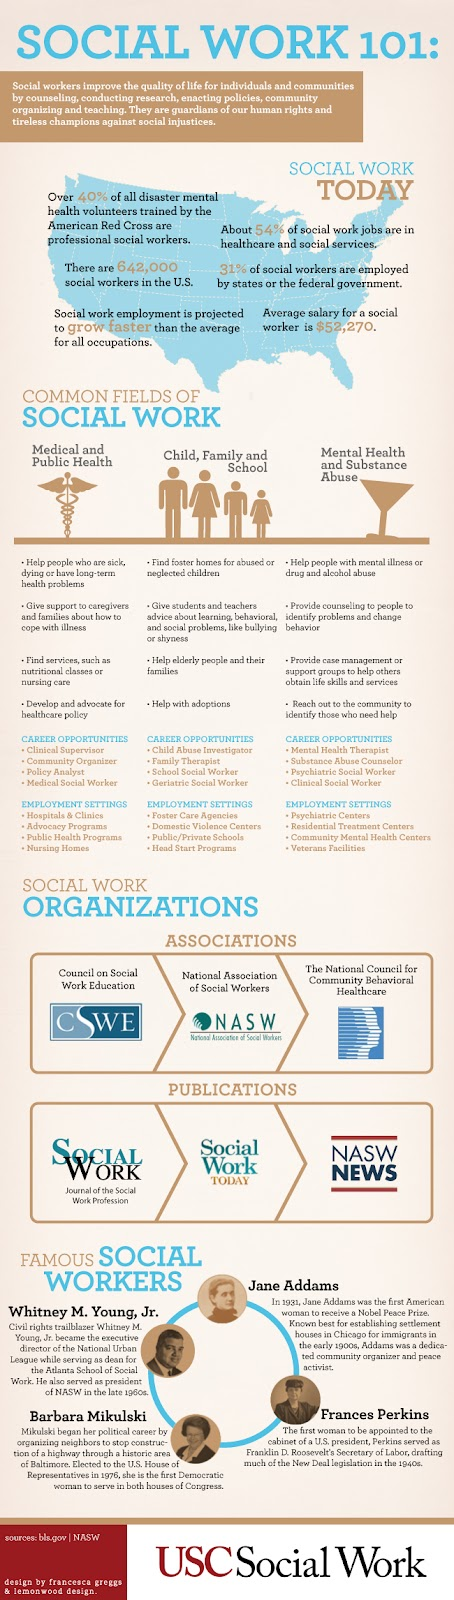 Social Work facts and Figures